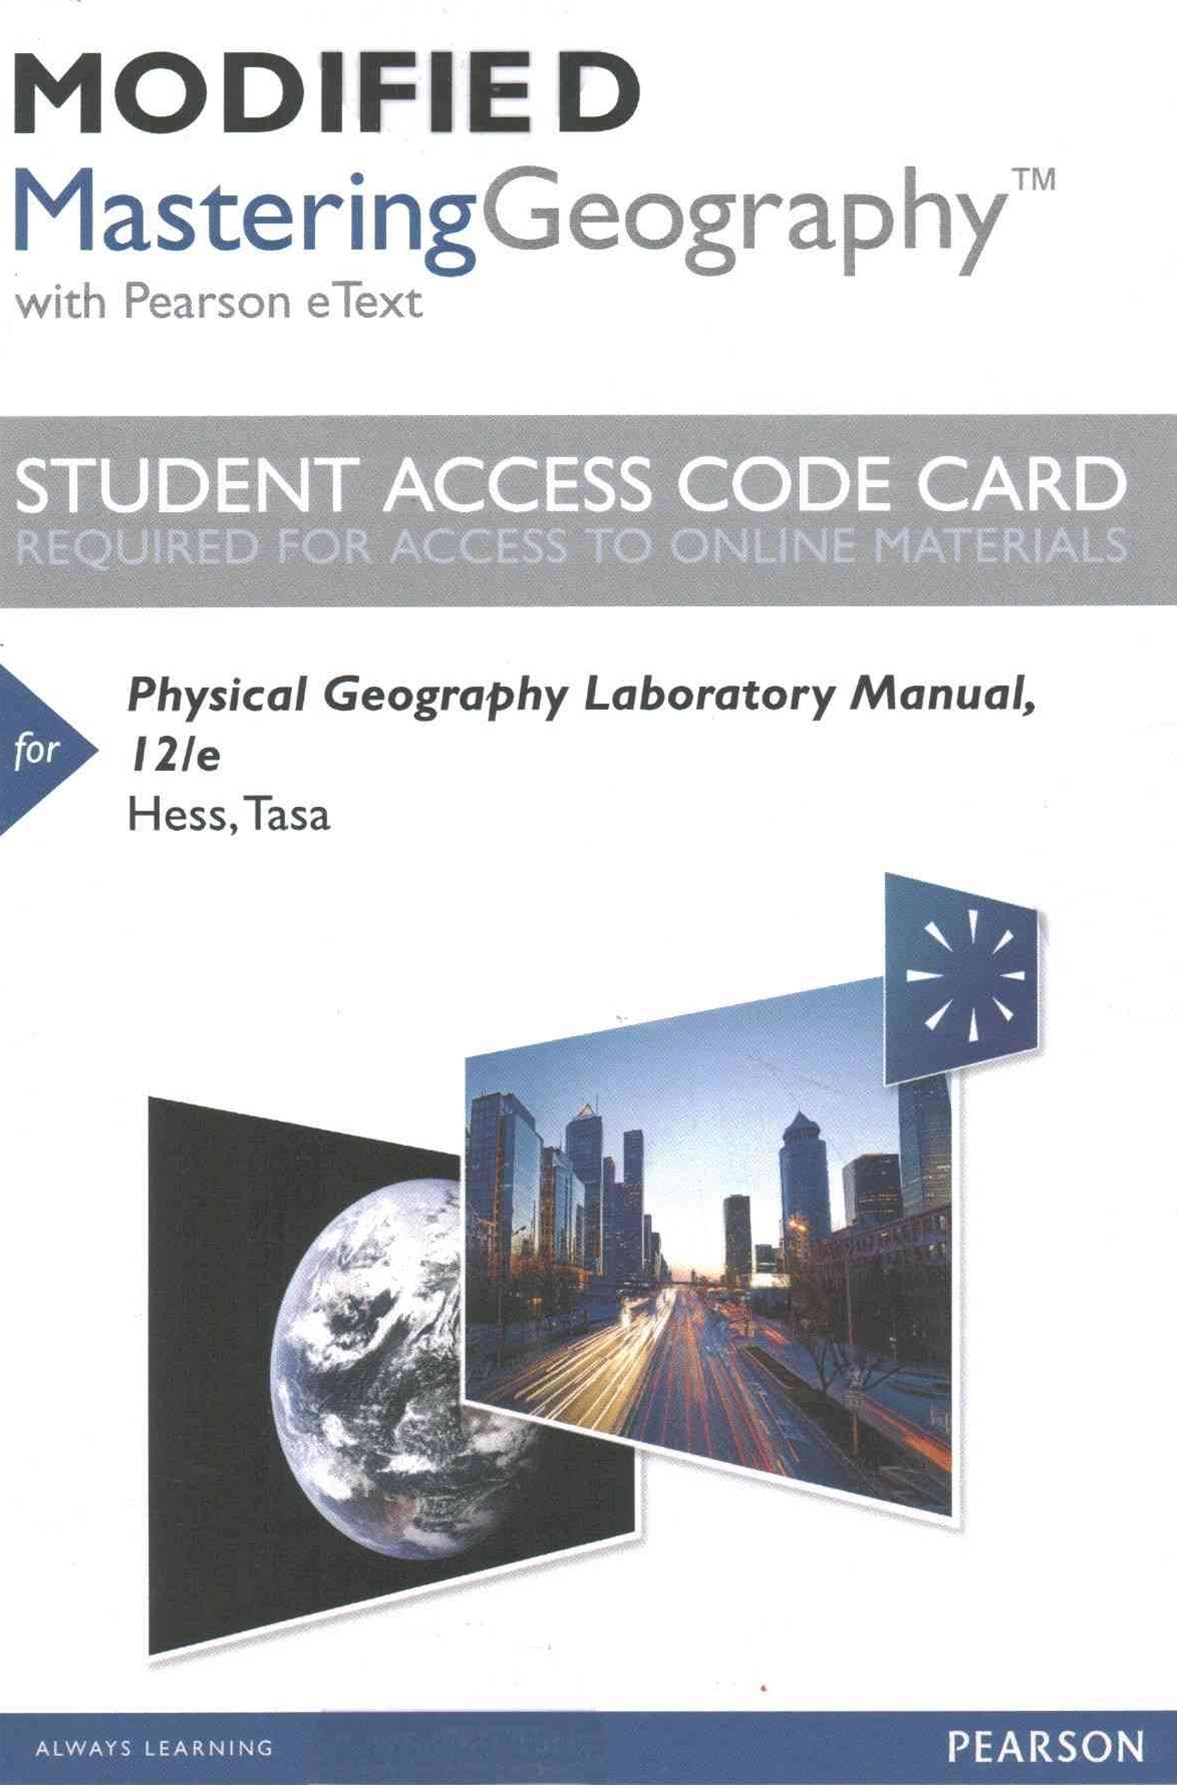 Modified Masteringgeography With Pearson Etext Standalone Access Card for Physical Geography Labora